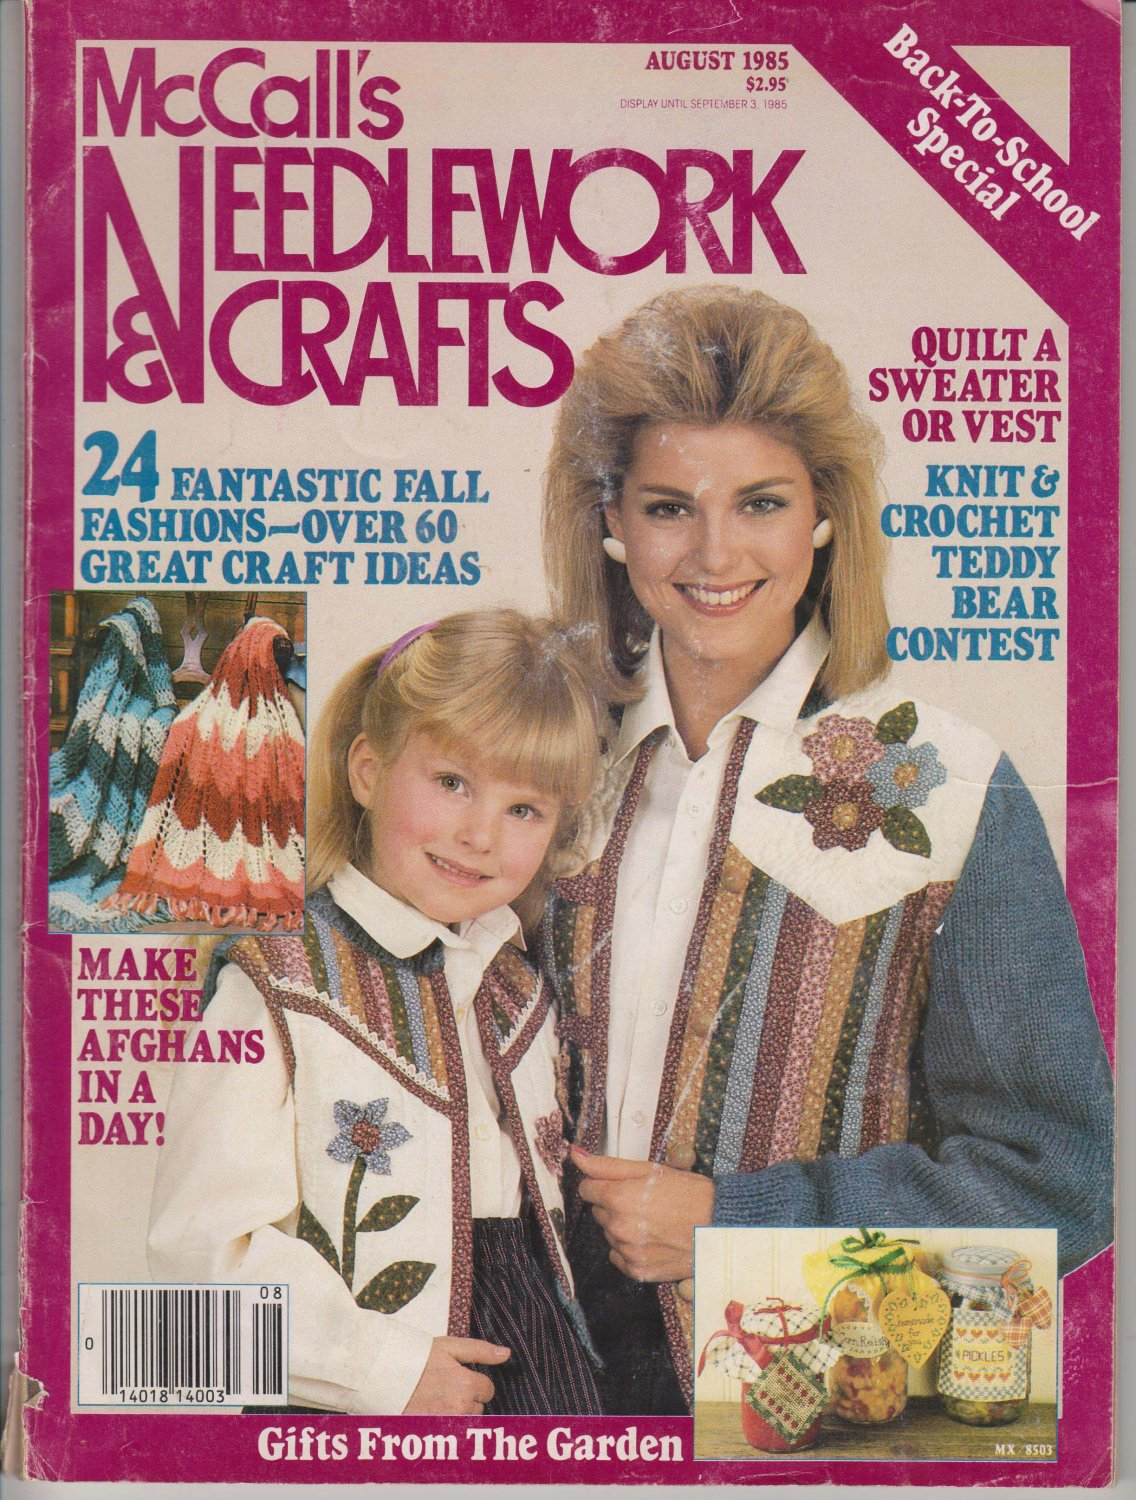 McCall's Needlework & Crafts August 1985